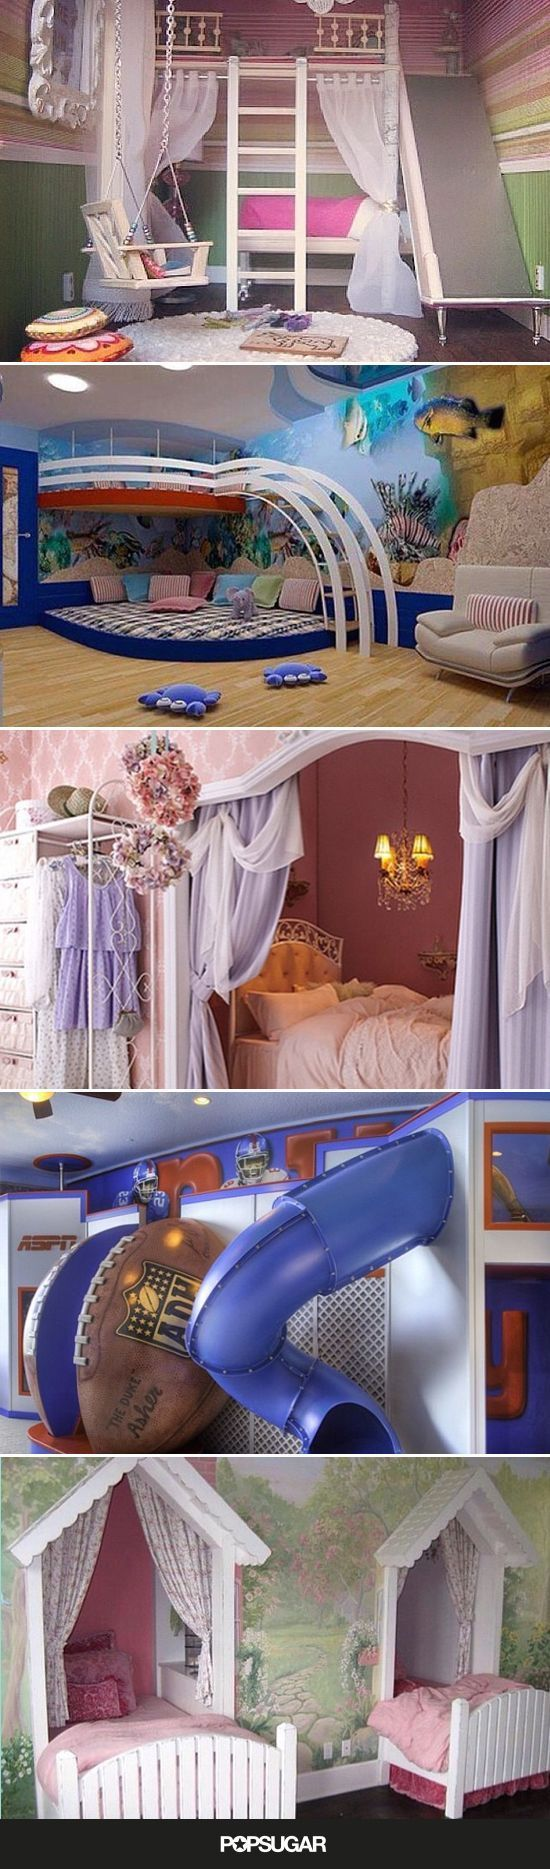 48 Dream Cool Bedroom Accessories Photo